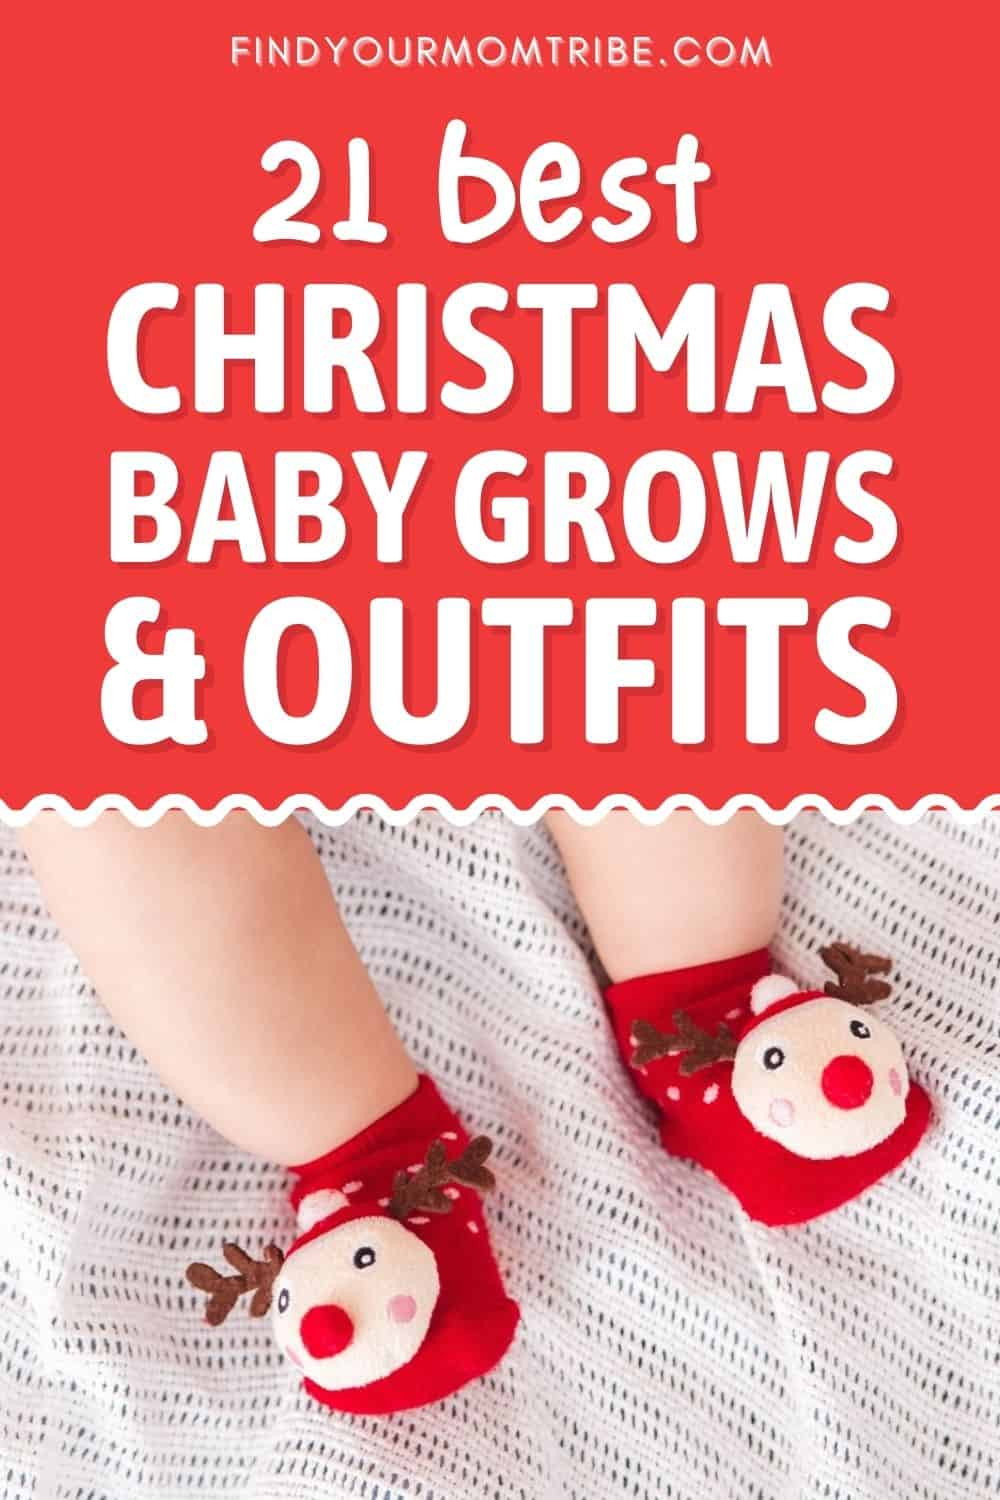 21 Best Christmas Baby Grows and Outfits Pinterest